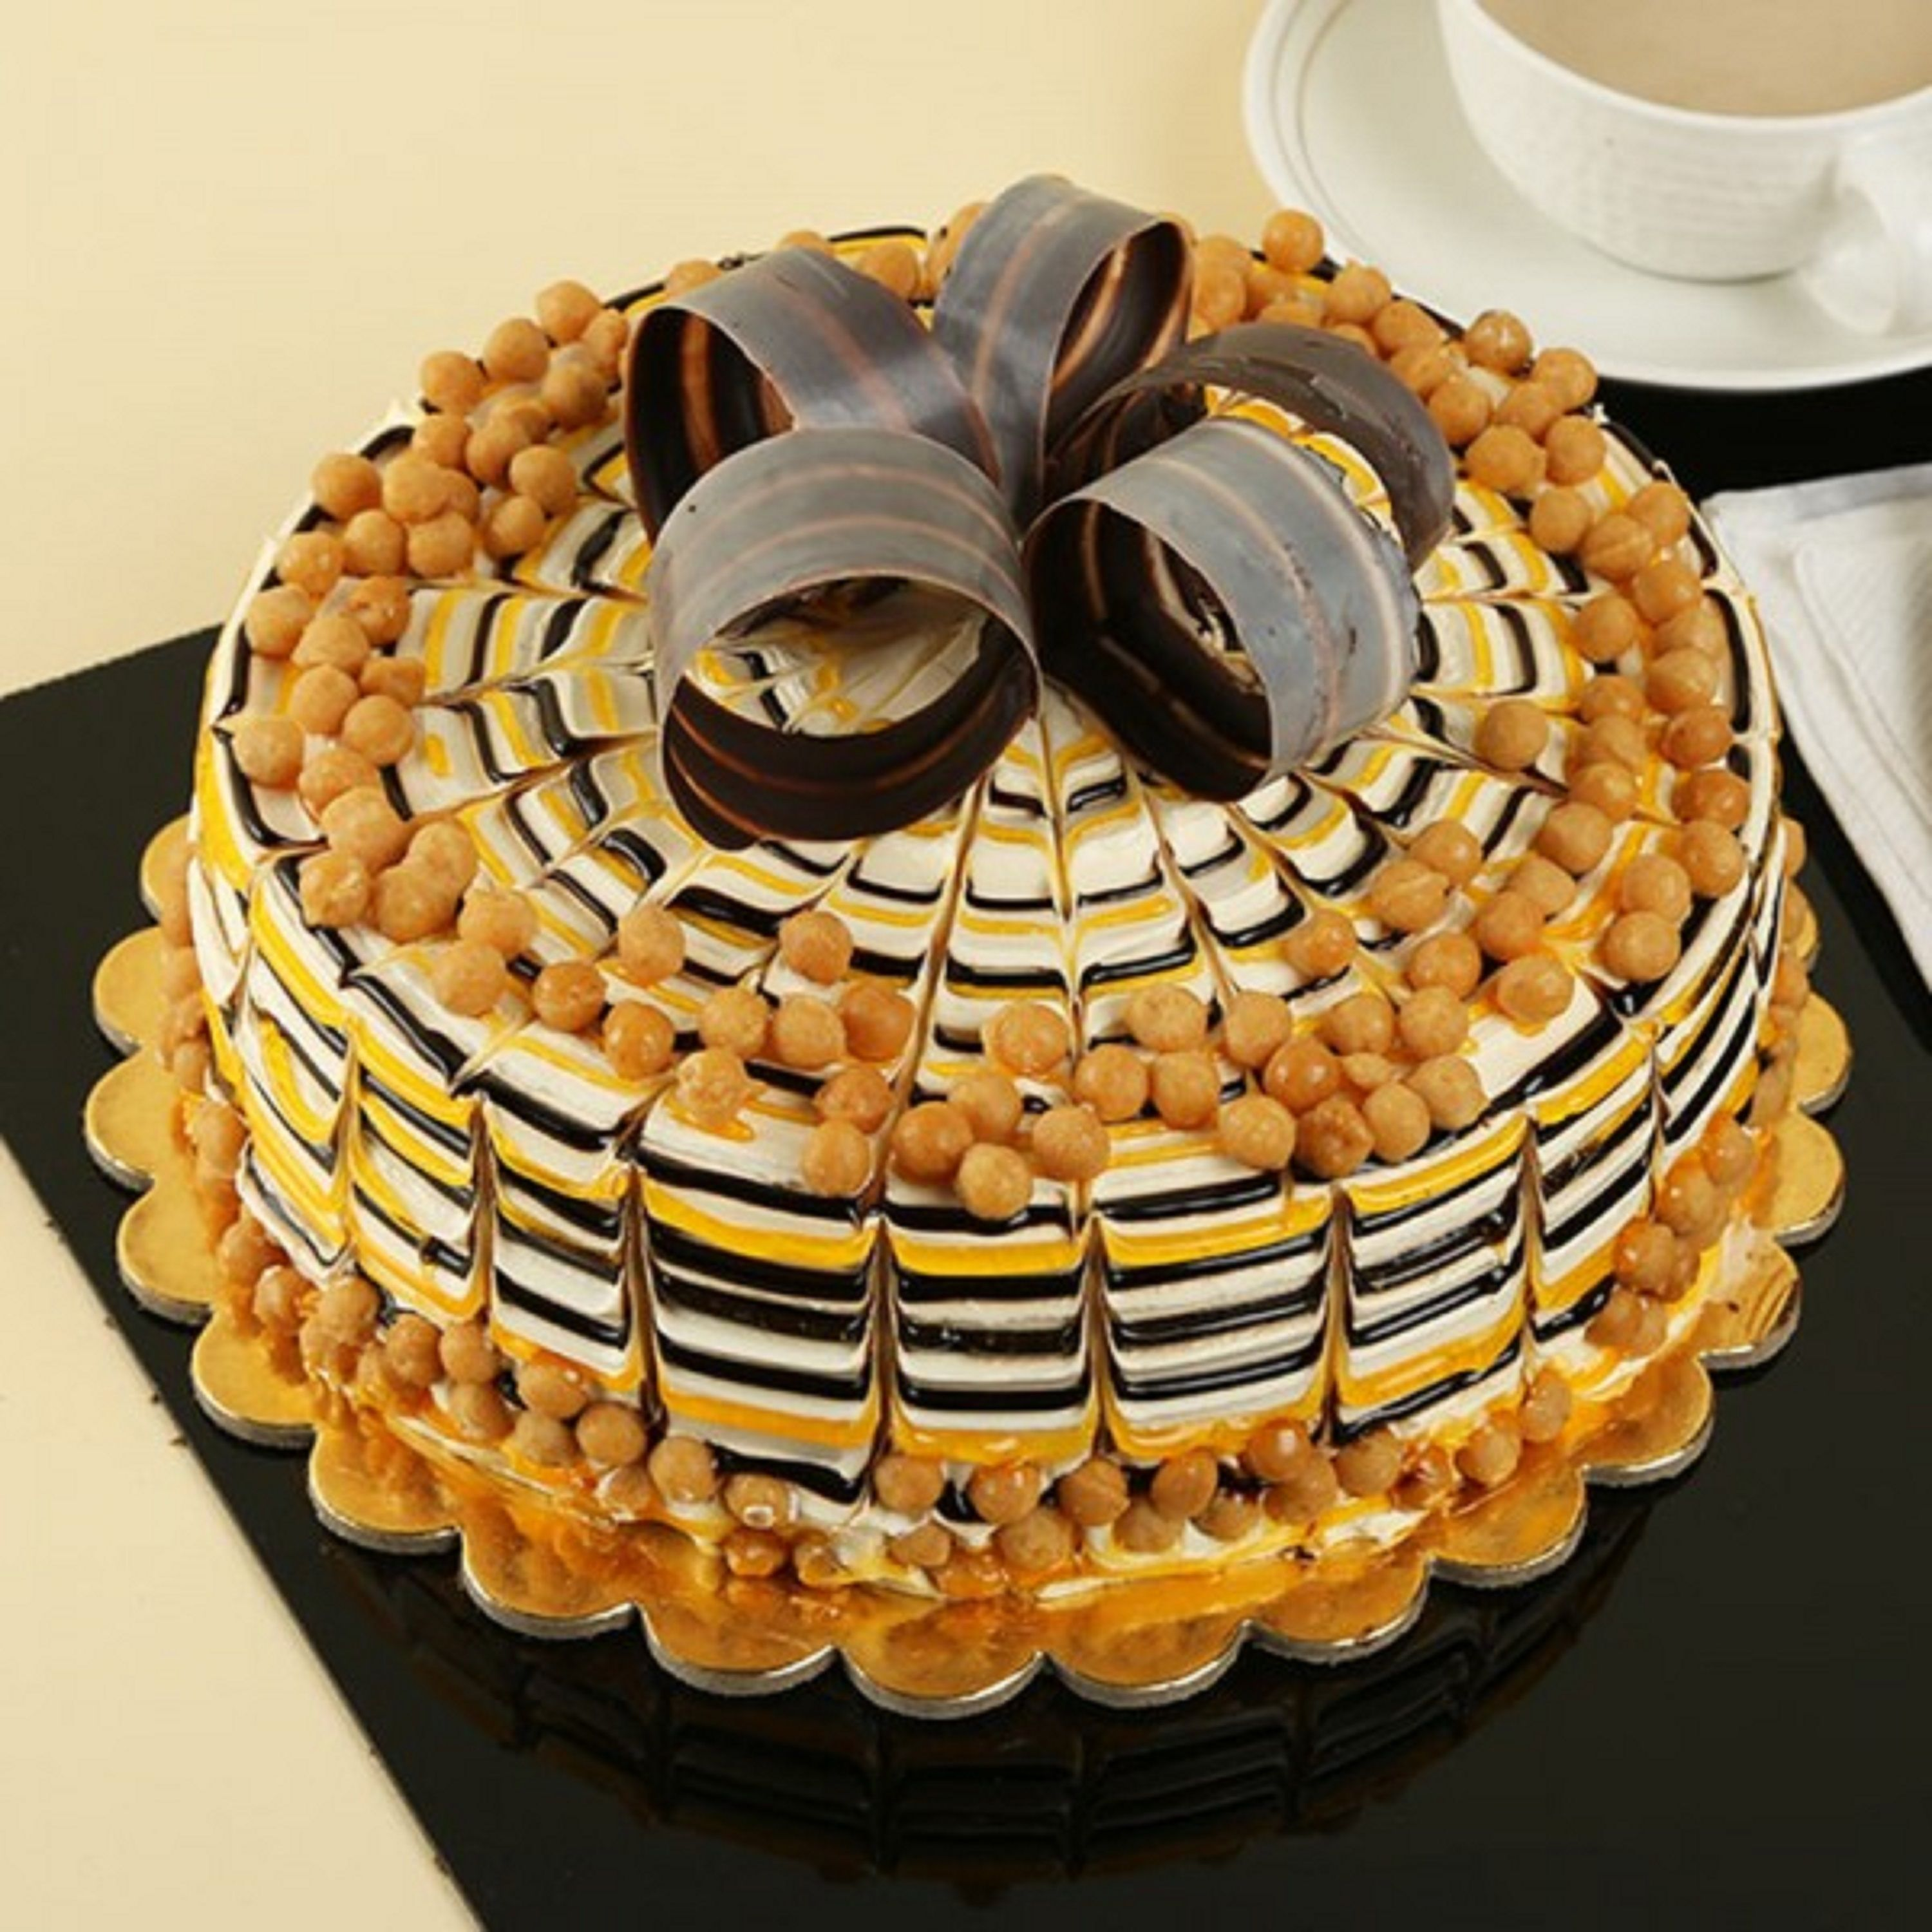 Amazing Order The Best Cake In Kashipur From Our Ting Website And We Funny Birthday Cards Online Kookostrdamsfinfo